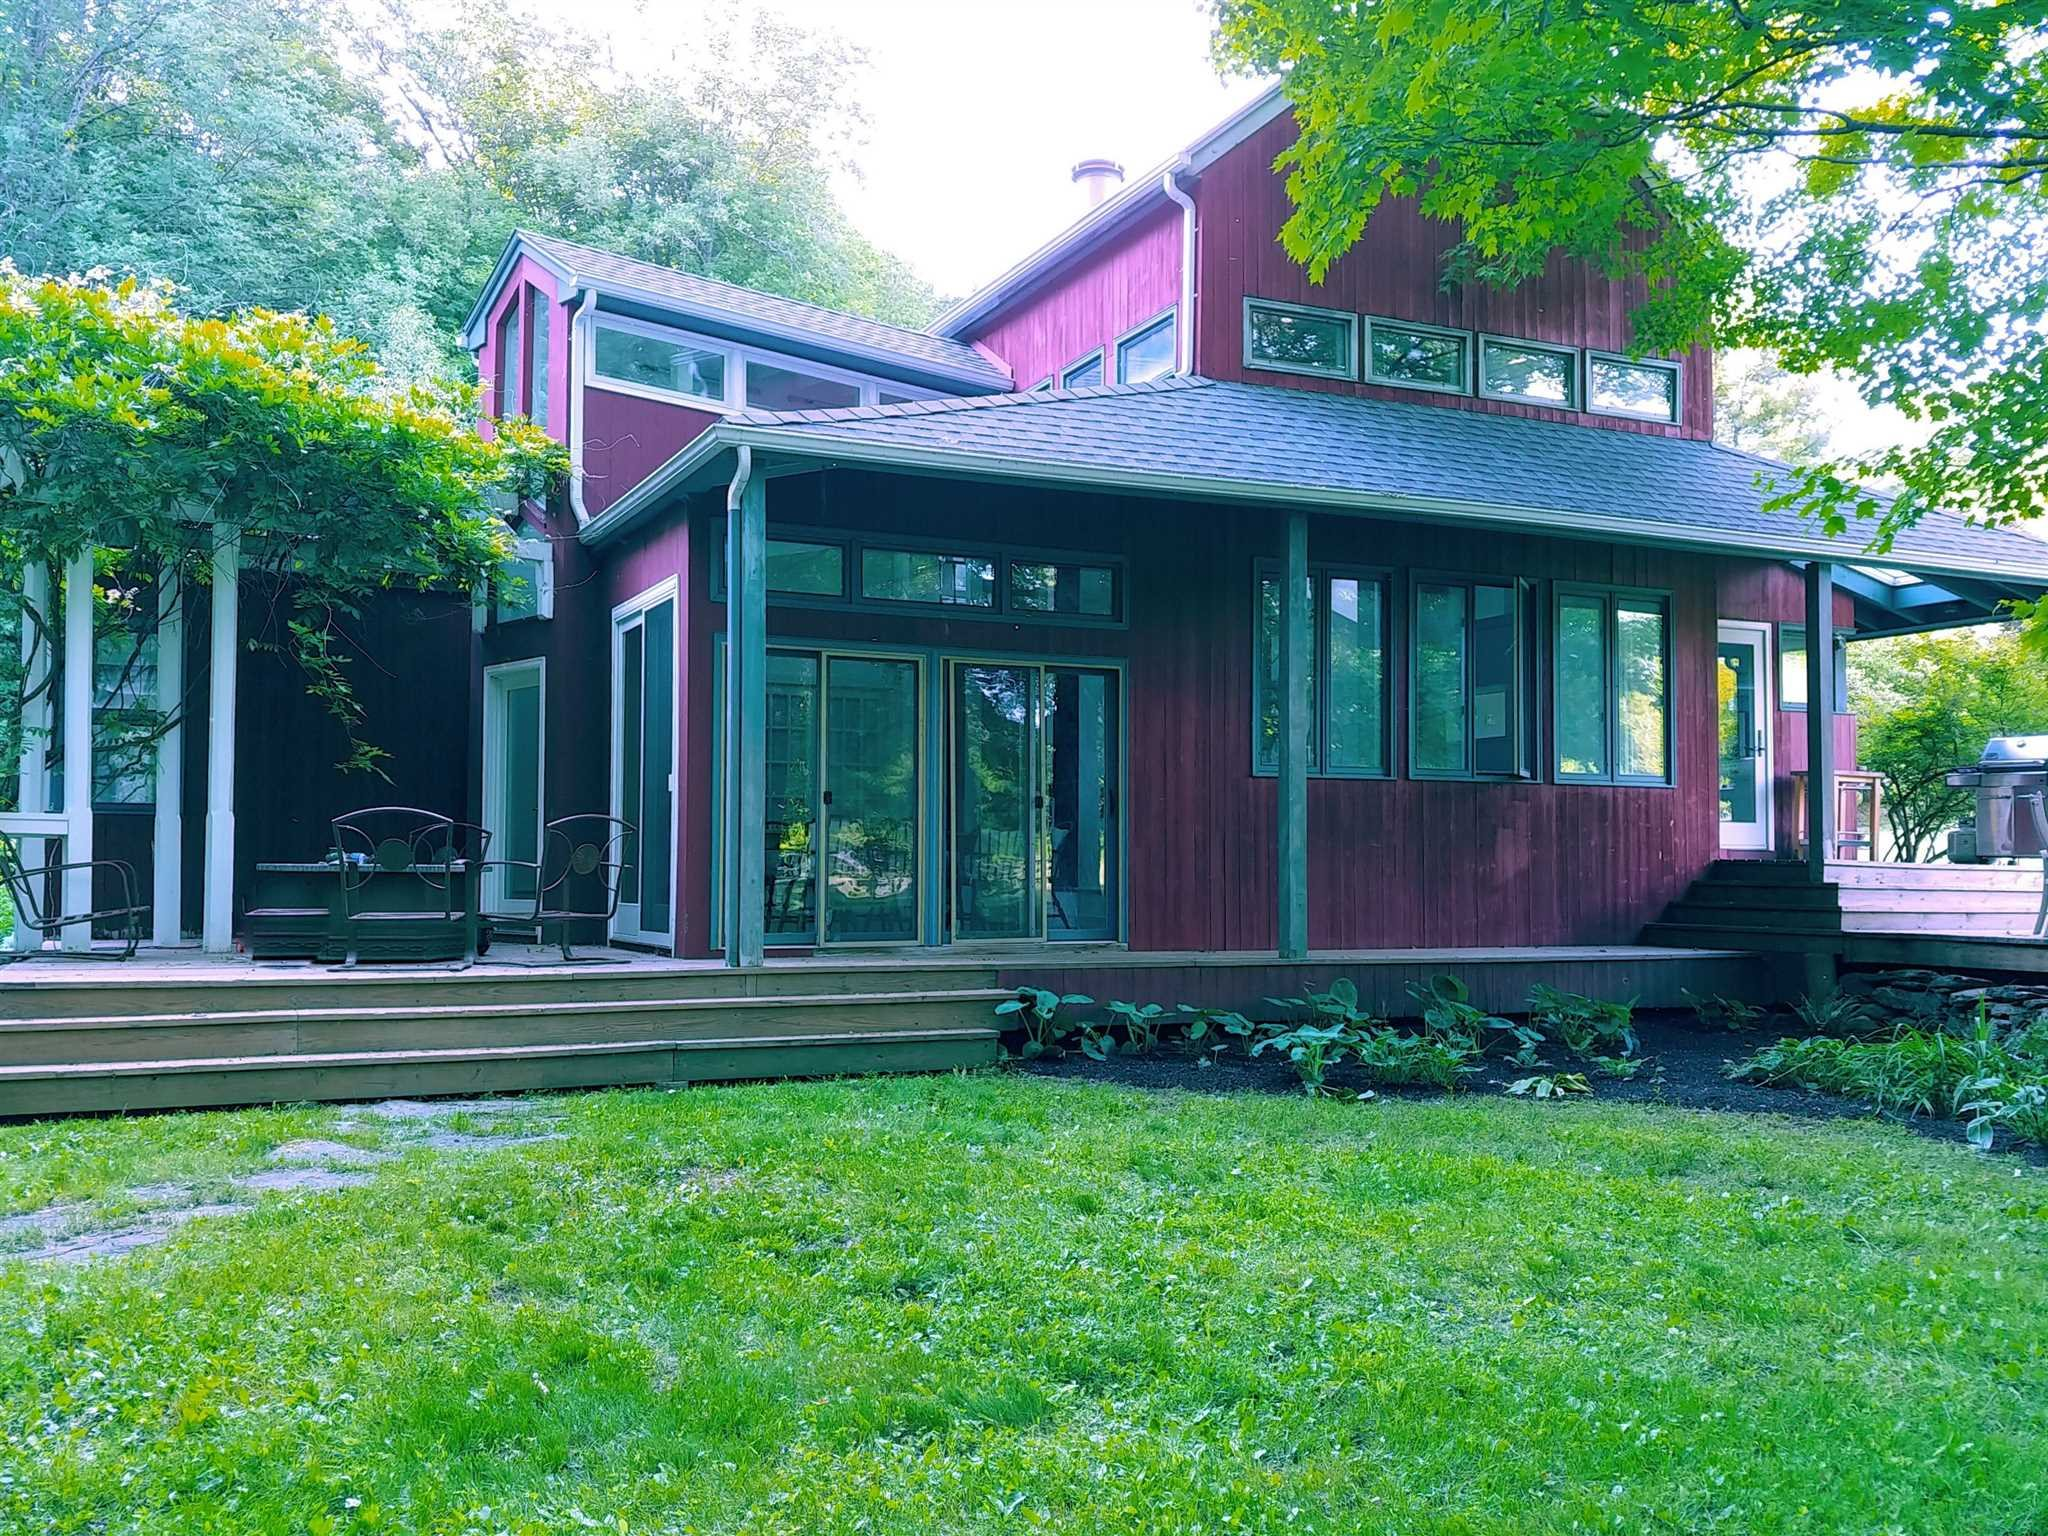 Single Family Home for Sale at 133 YELLOW CITY Road 133 YELLOW CITY Road Amenia, New York 12501 United States